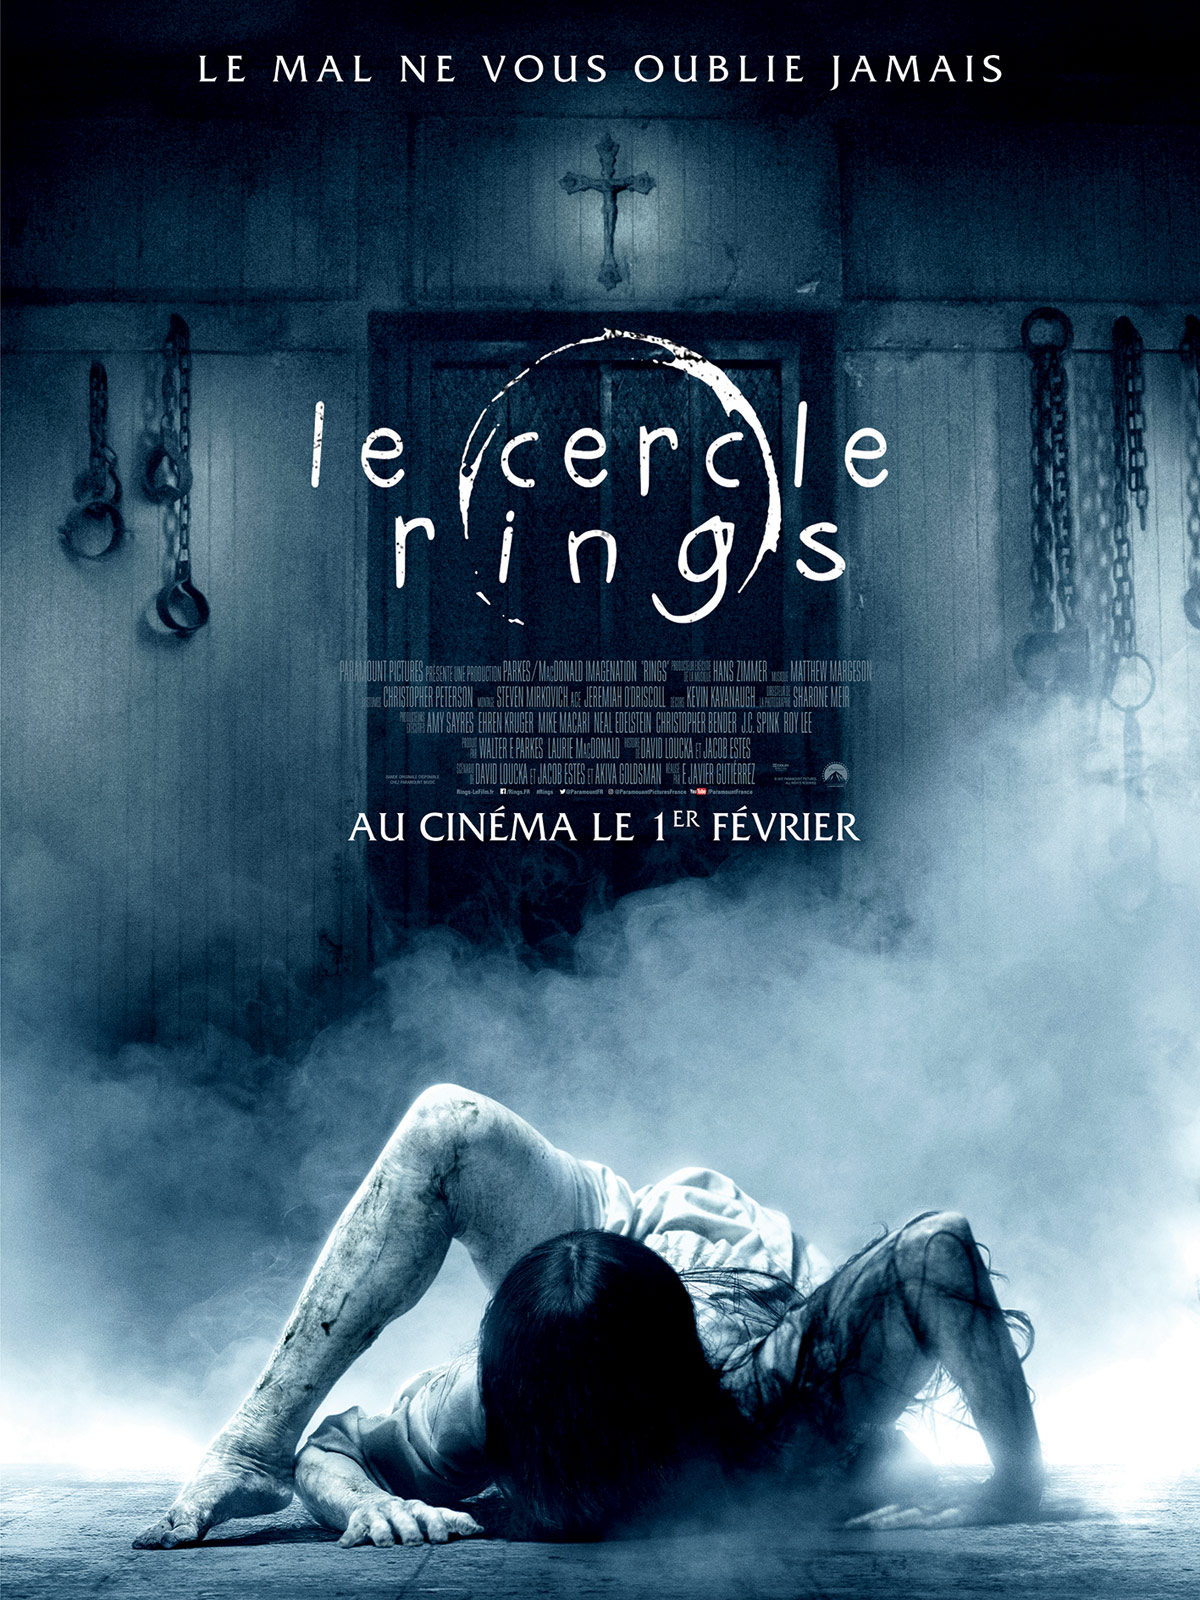 Le Cercle   Rings Qualité Blu Ray 720p   FRENCH